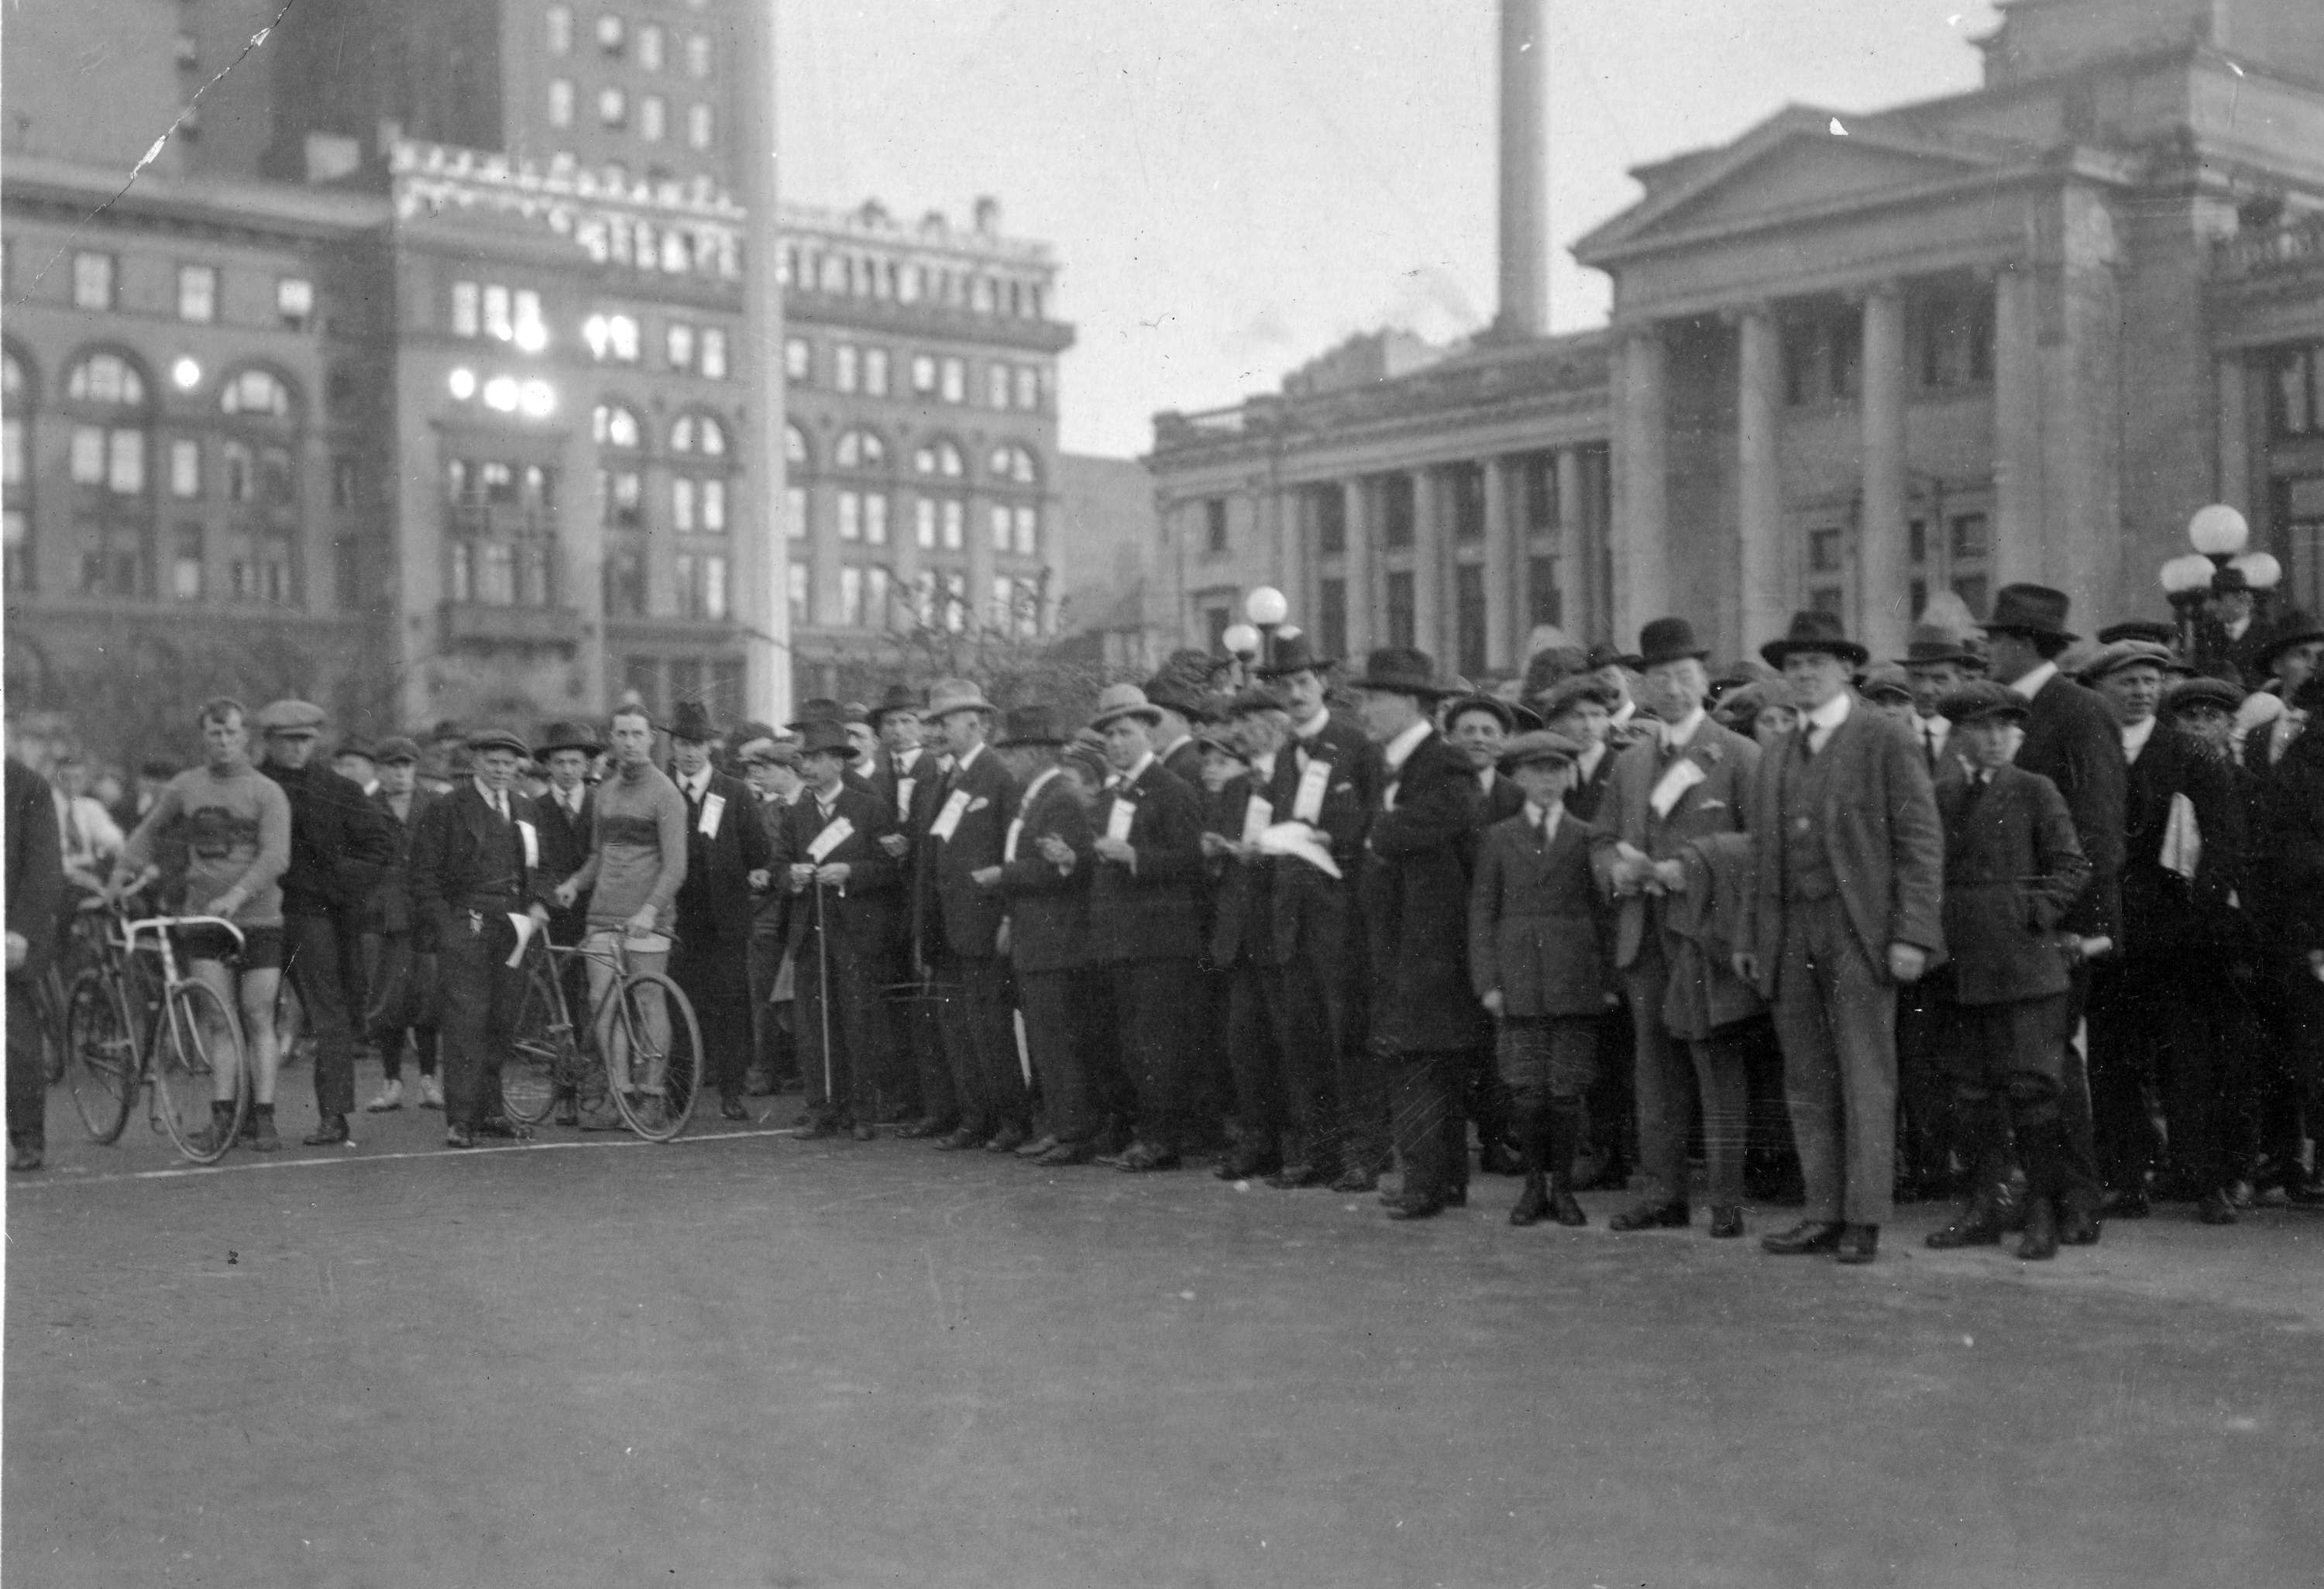 A cycle race outside the BC courthouse in the late 1910s (Vancouver Archives)